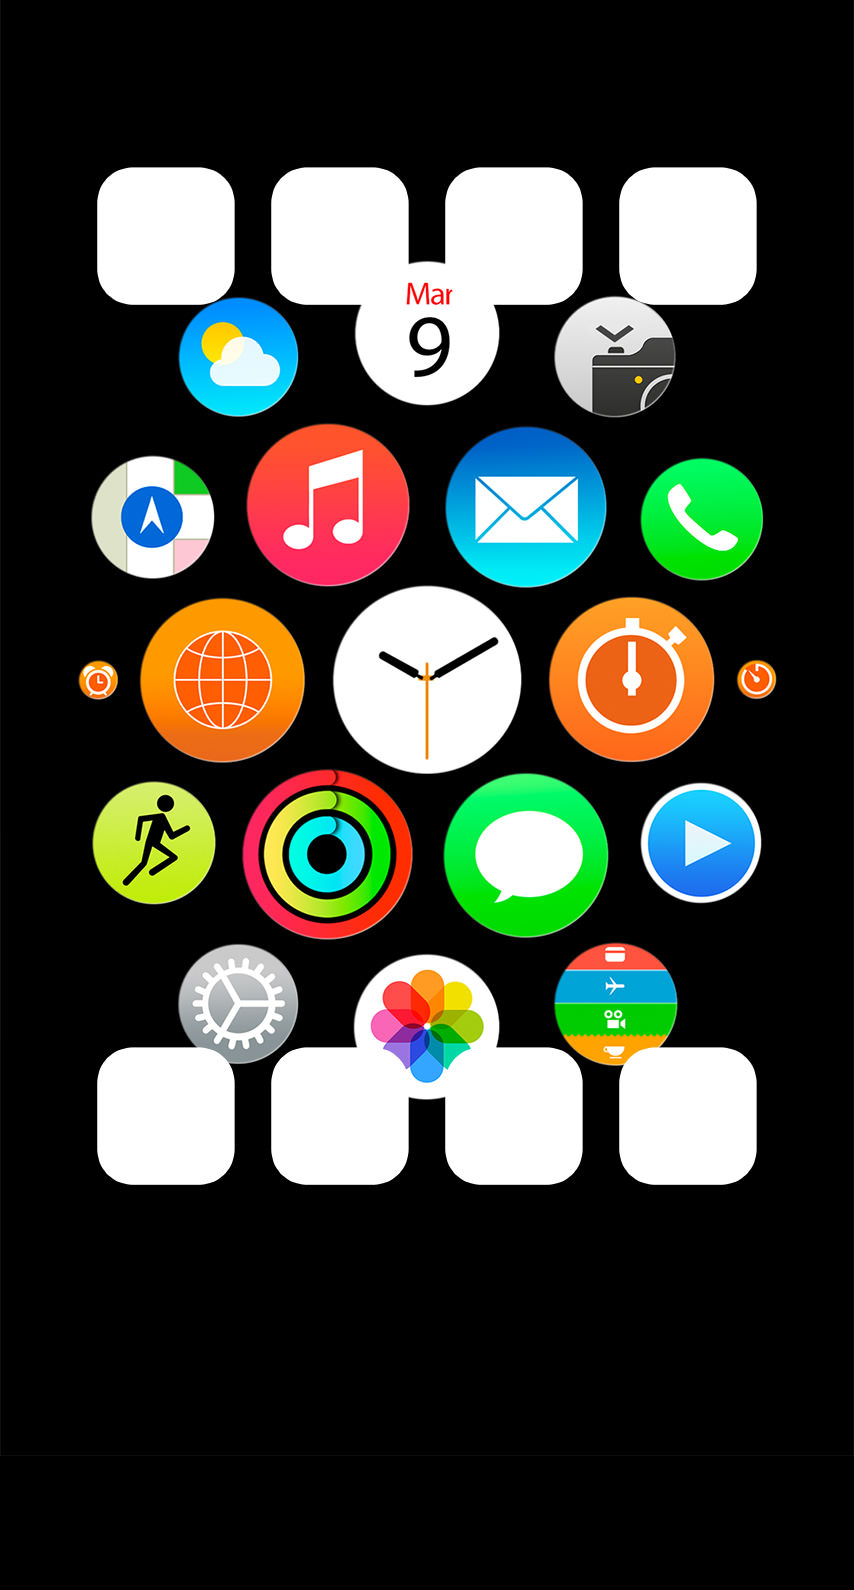 %C2%BB-Like-Apple-Watch-Black-Shelf-sc-iPhone-wallpaper-wp34012781